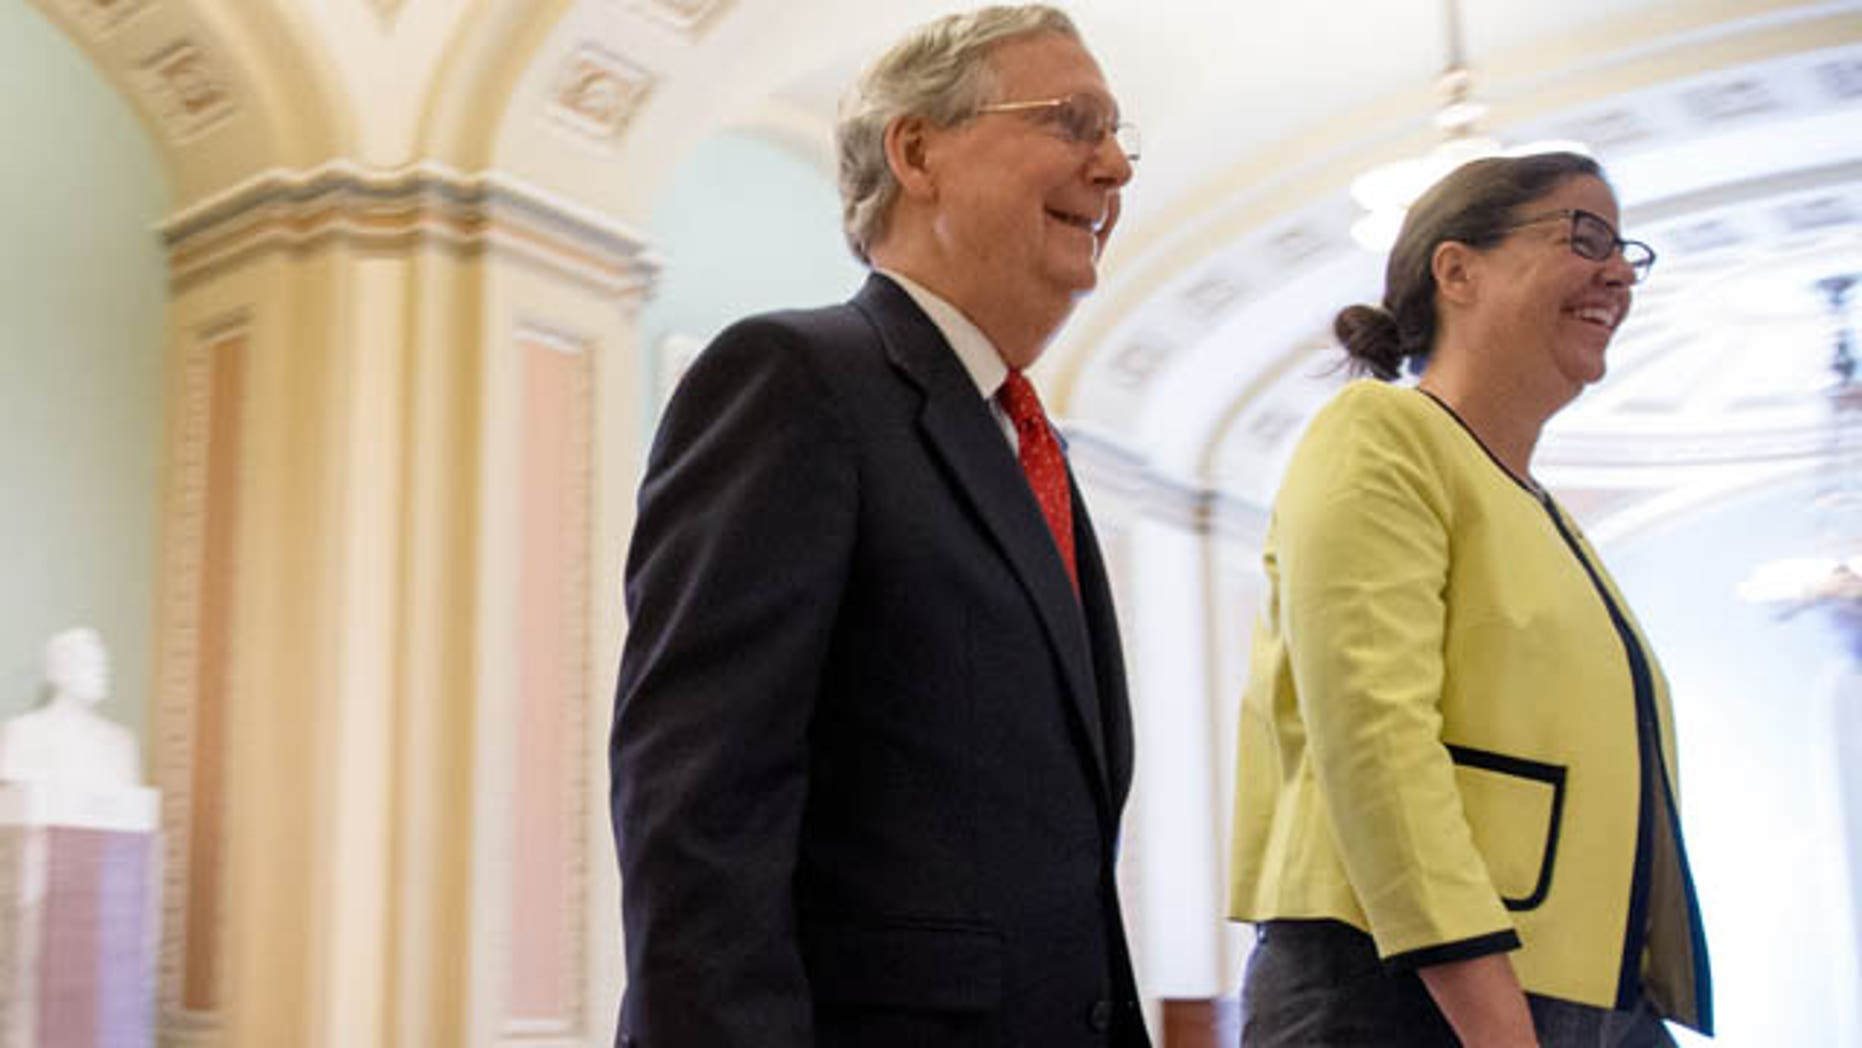 July 26, 2015: Senate Majority Leader Mitch McConnell, R-Ky., left, accompanied by Secretary for the Majority of the Senate Laura Dove, heads into the Senate chamber as the Senate convenes for a Sunday session on Capitol Hill in Washington. (AP Photo/Andrew Harnik)